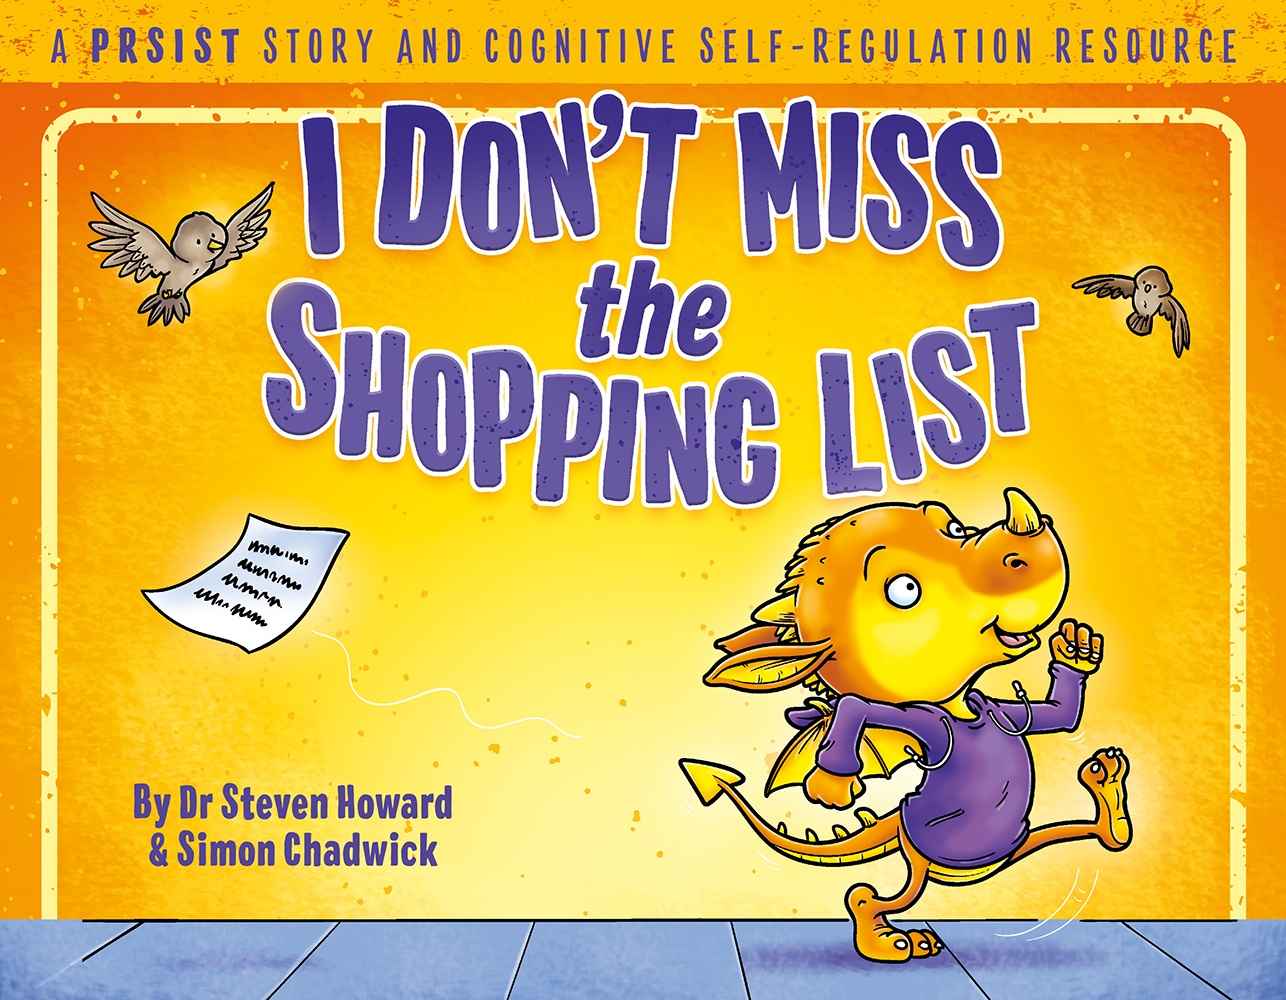 Cover for I Don't Miss The Shopping List from Ceratopia Books, a PRSIST book